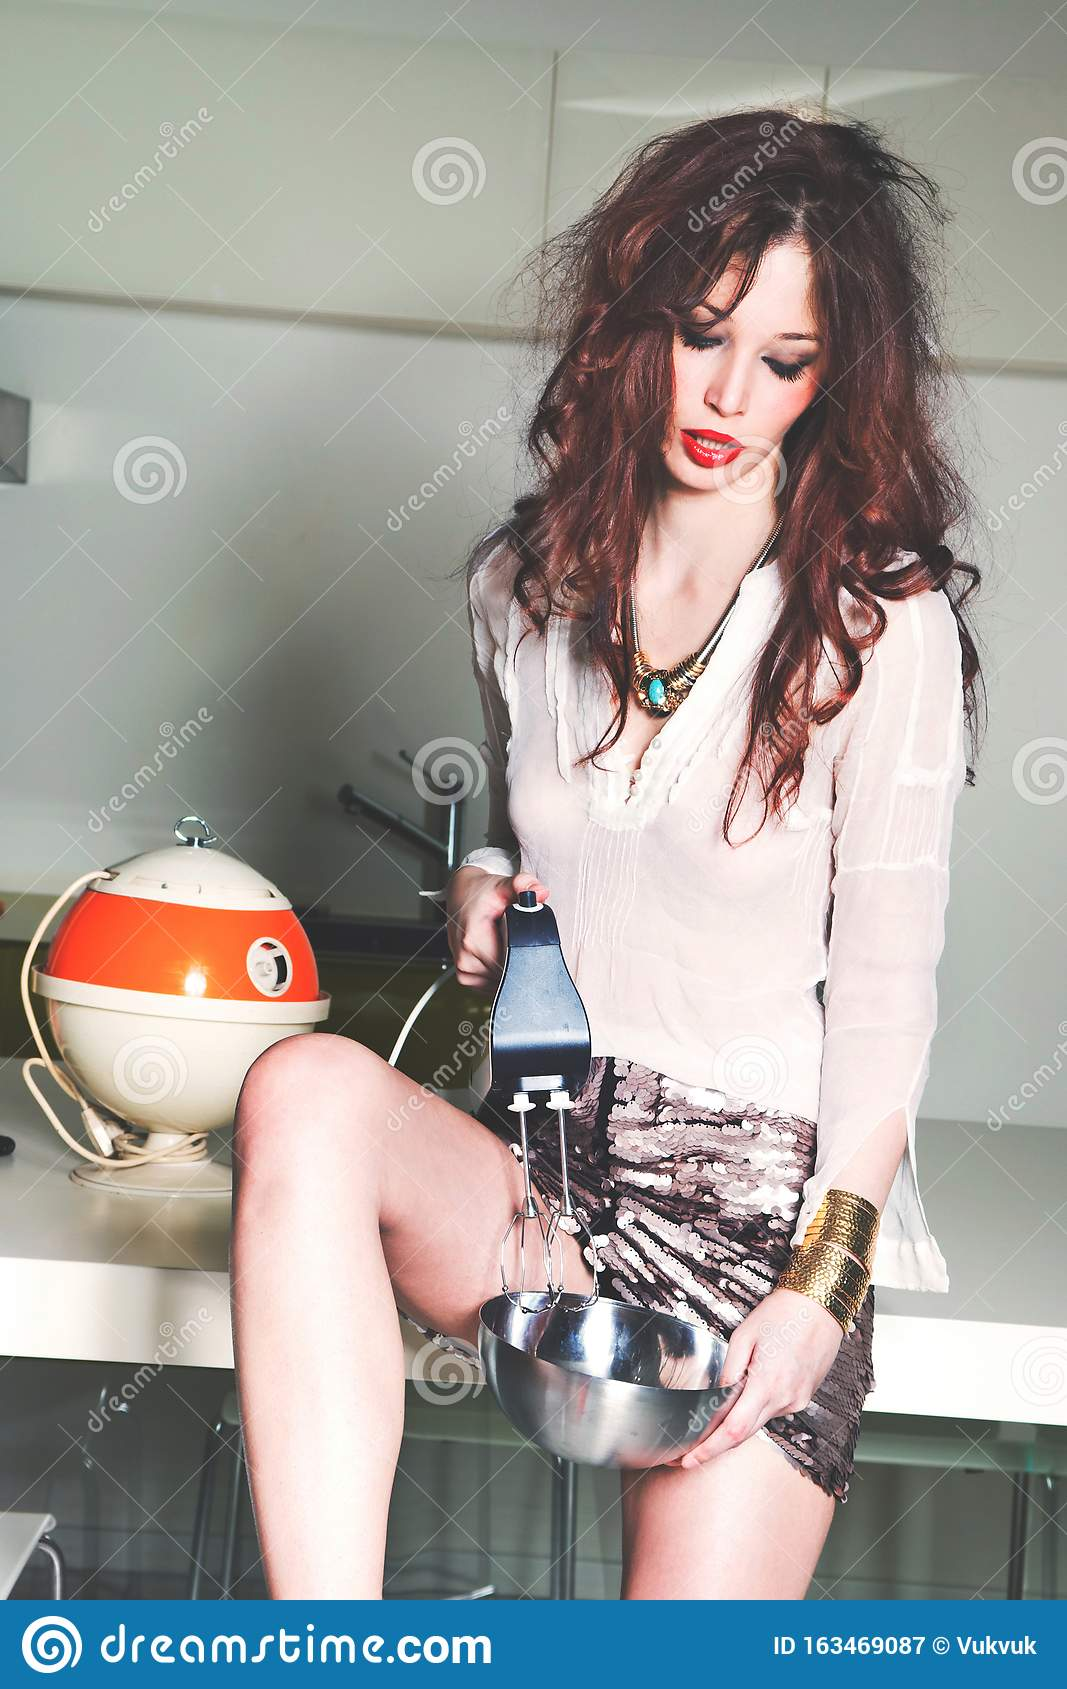 Fashion Girl In Mini Skirt With Mixer In The Kitchen Stock Image Image Of Slim Fashion 163469087